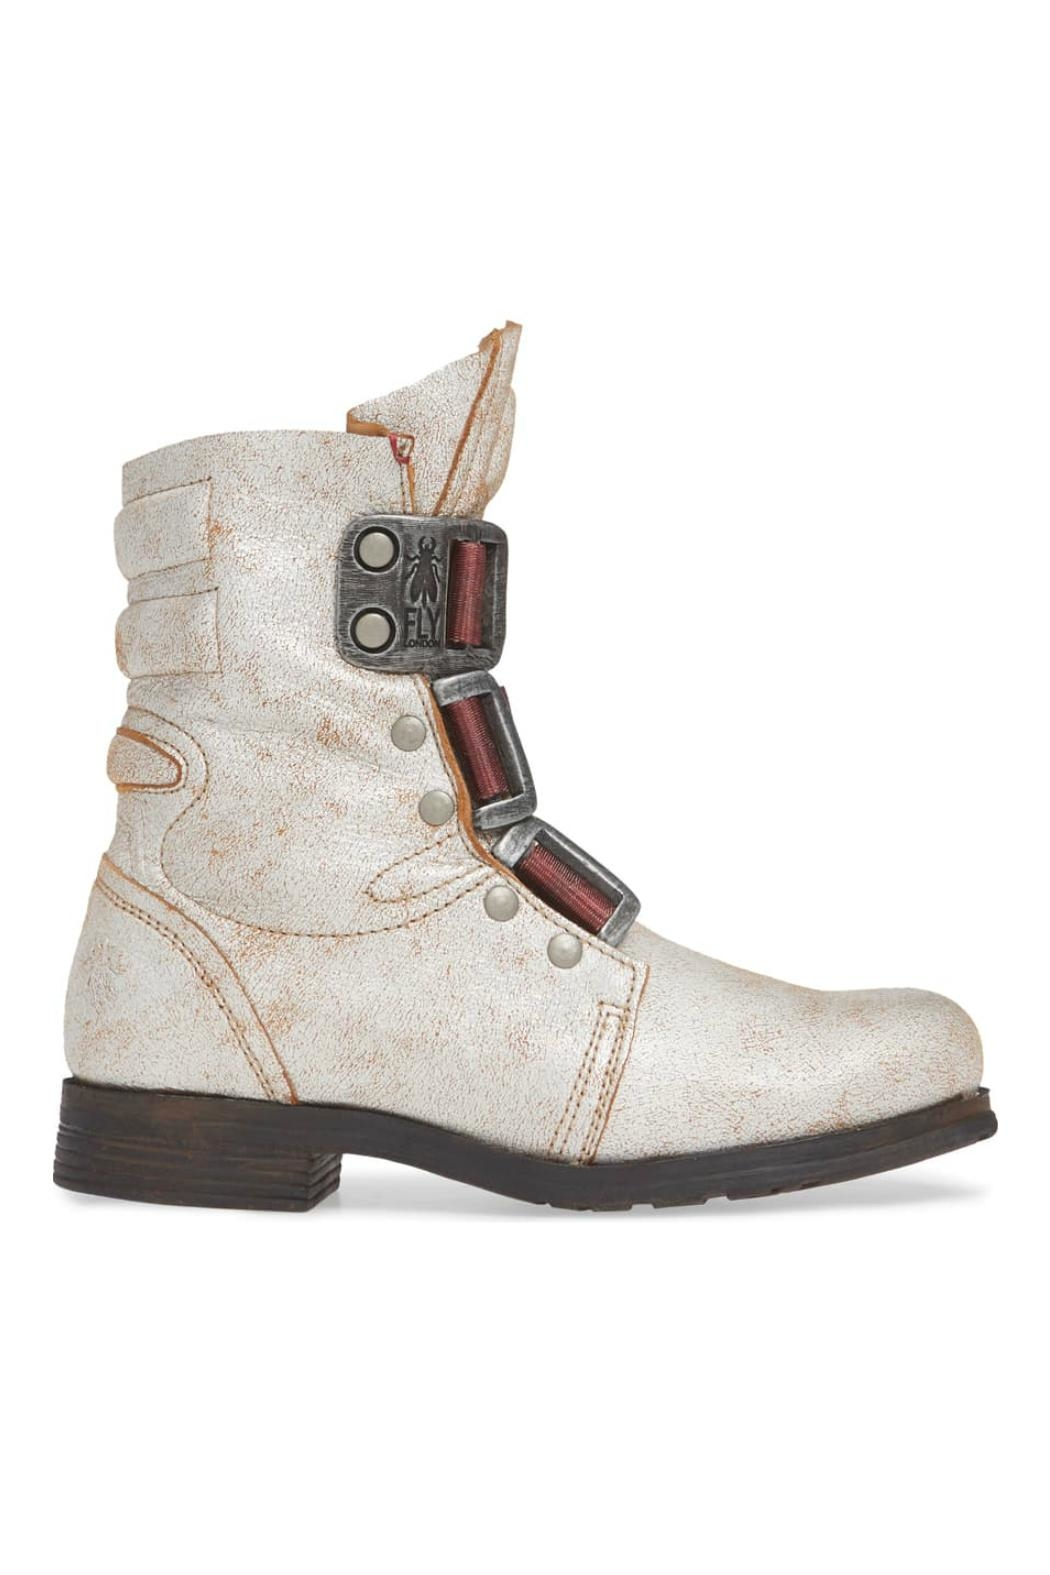 Fly London Stif Military Boot - Front Full Image